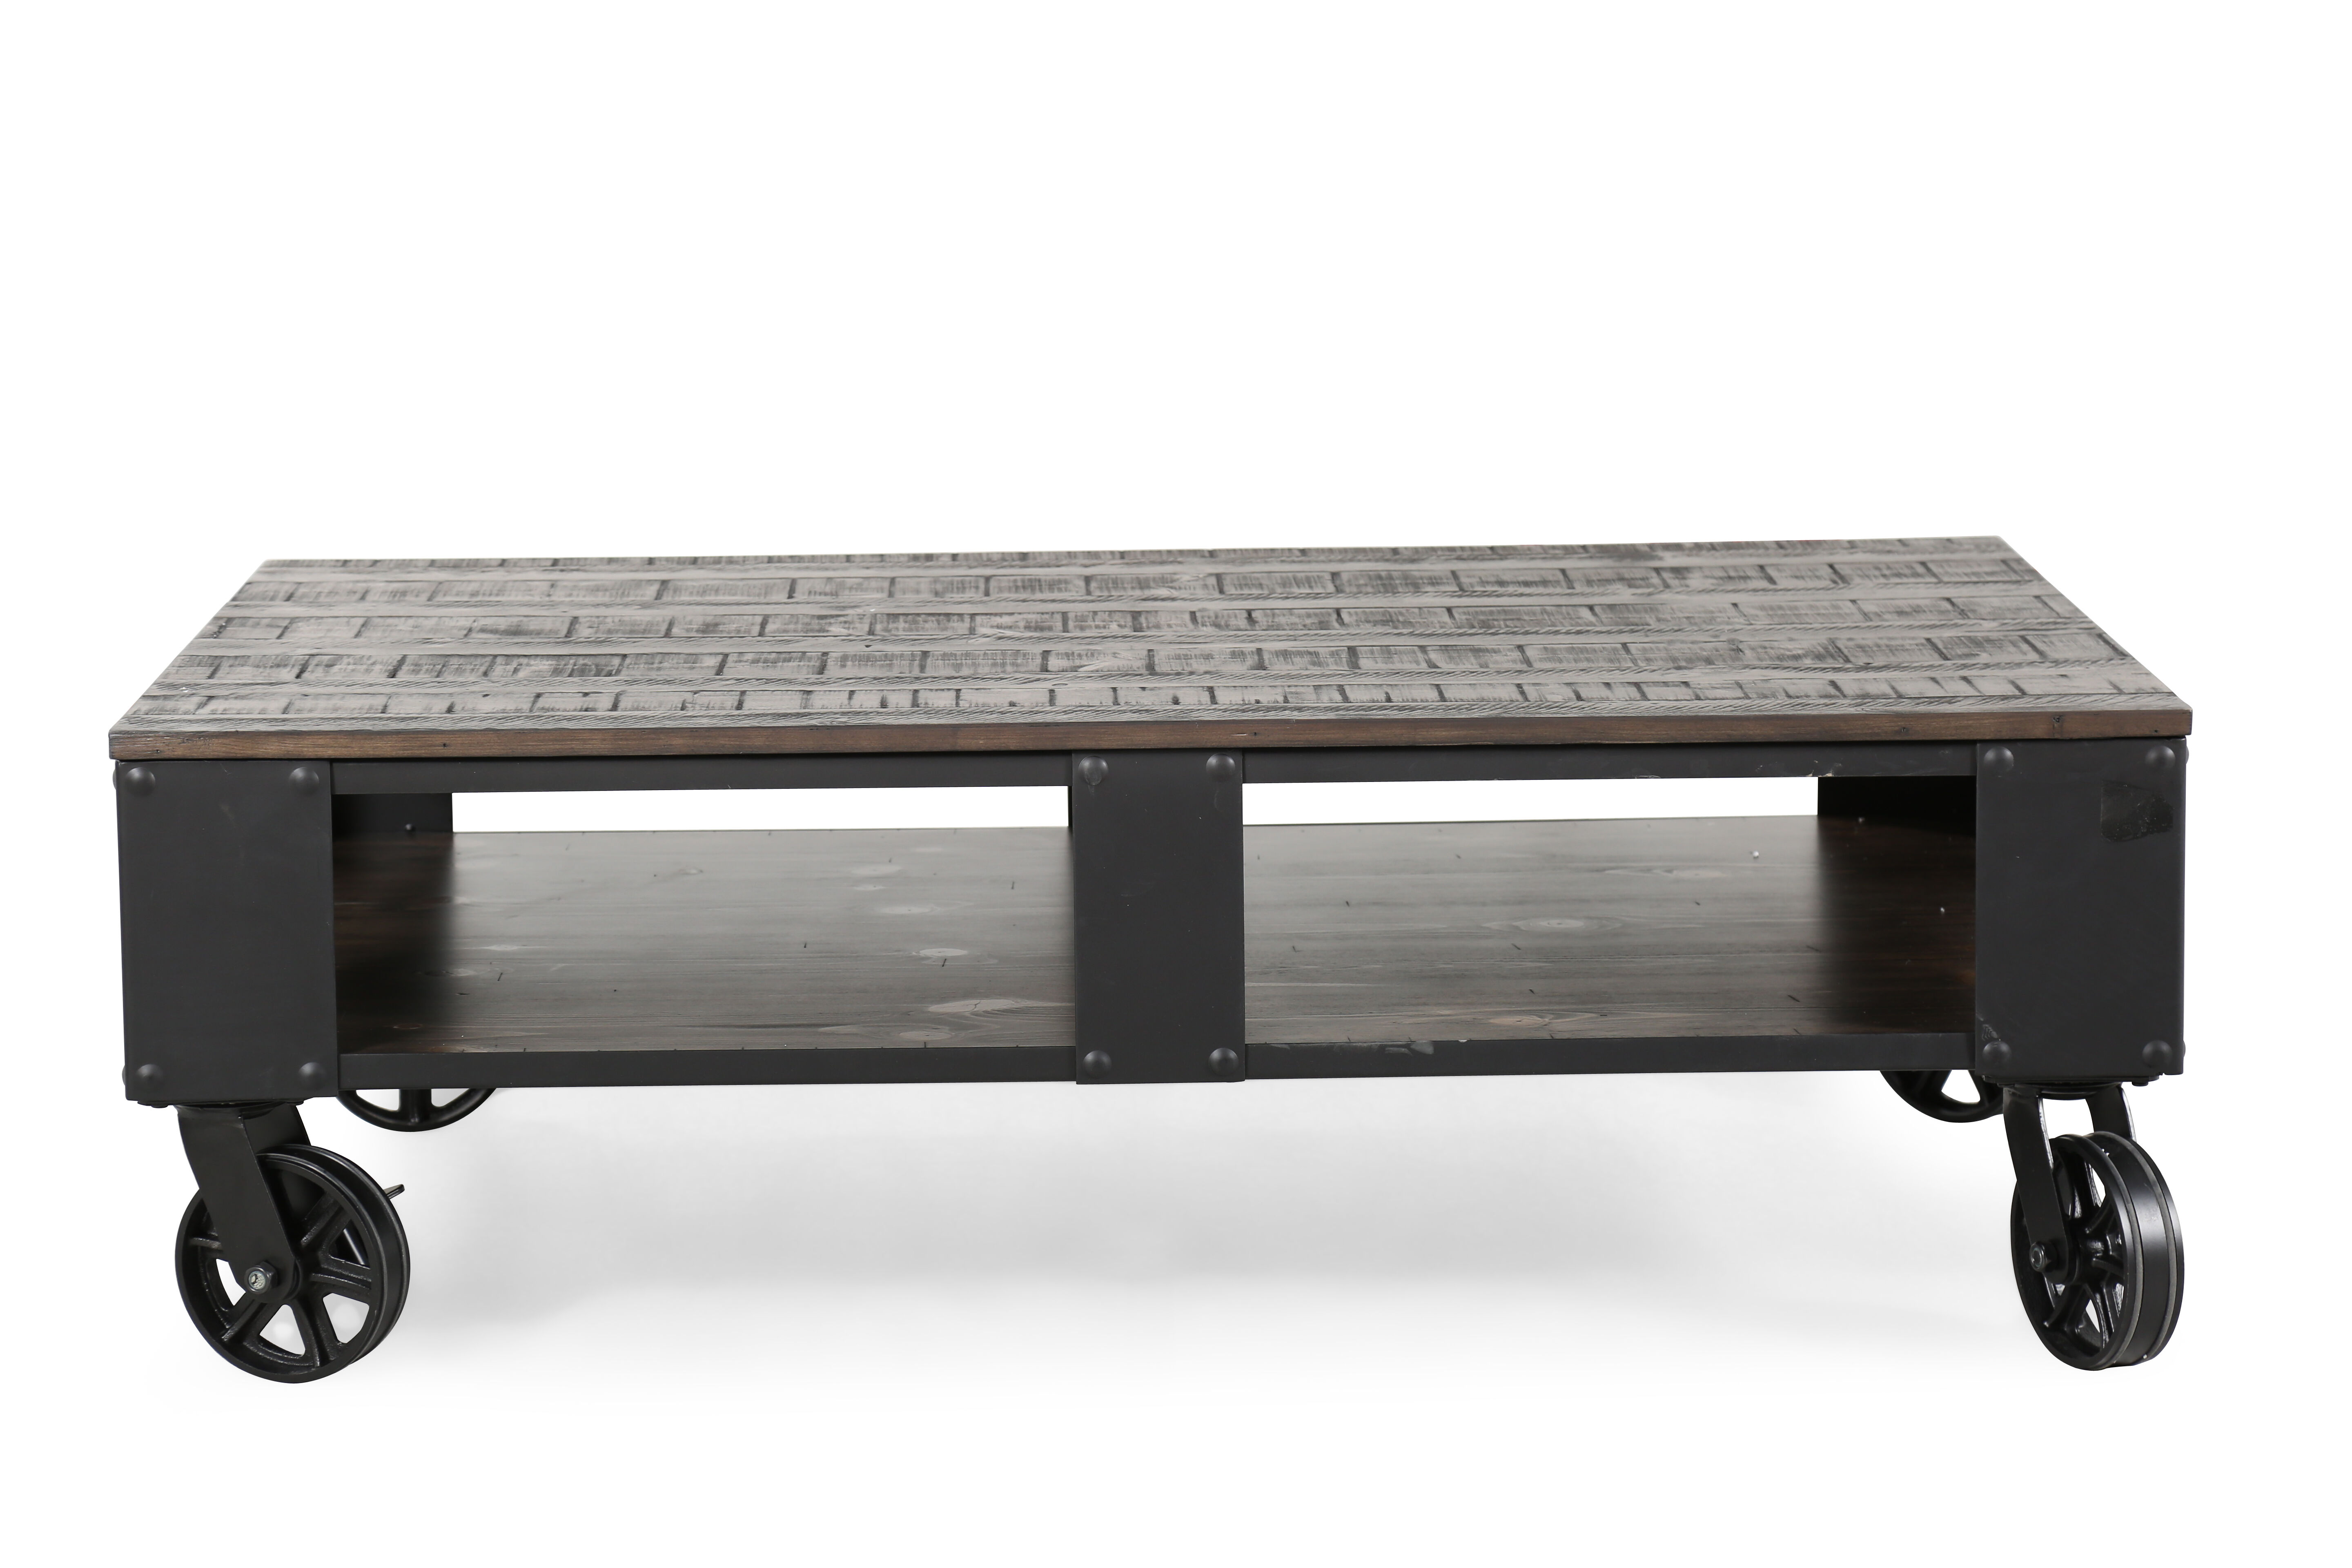 Images Rectangular Contemporary Wheeled Cocktail Tableu0026nbsp;in Weathered  Charcoal Rectangular Contemporary Wheeled Cocktail Tableu0026nbsp;in Weathered  Charcoal